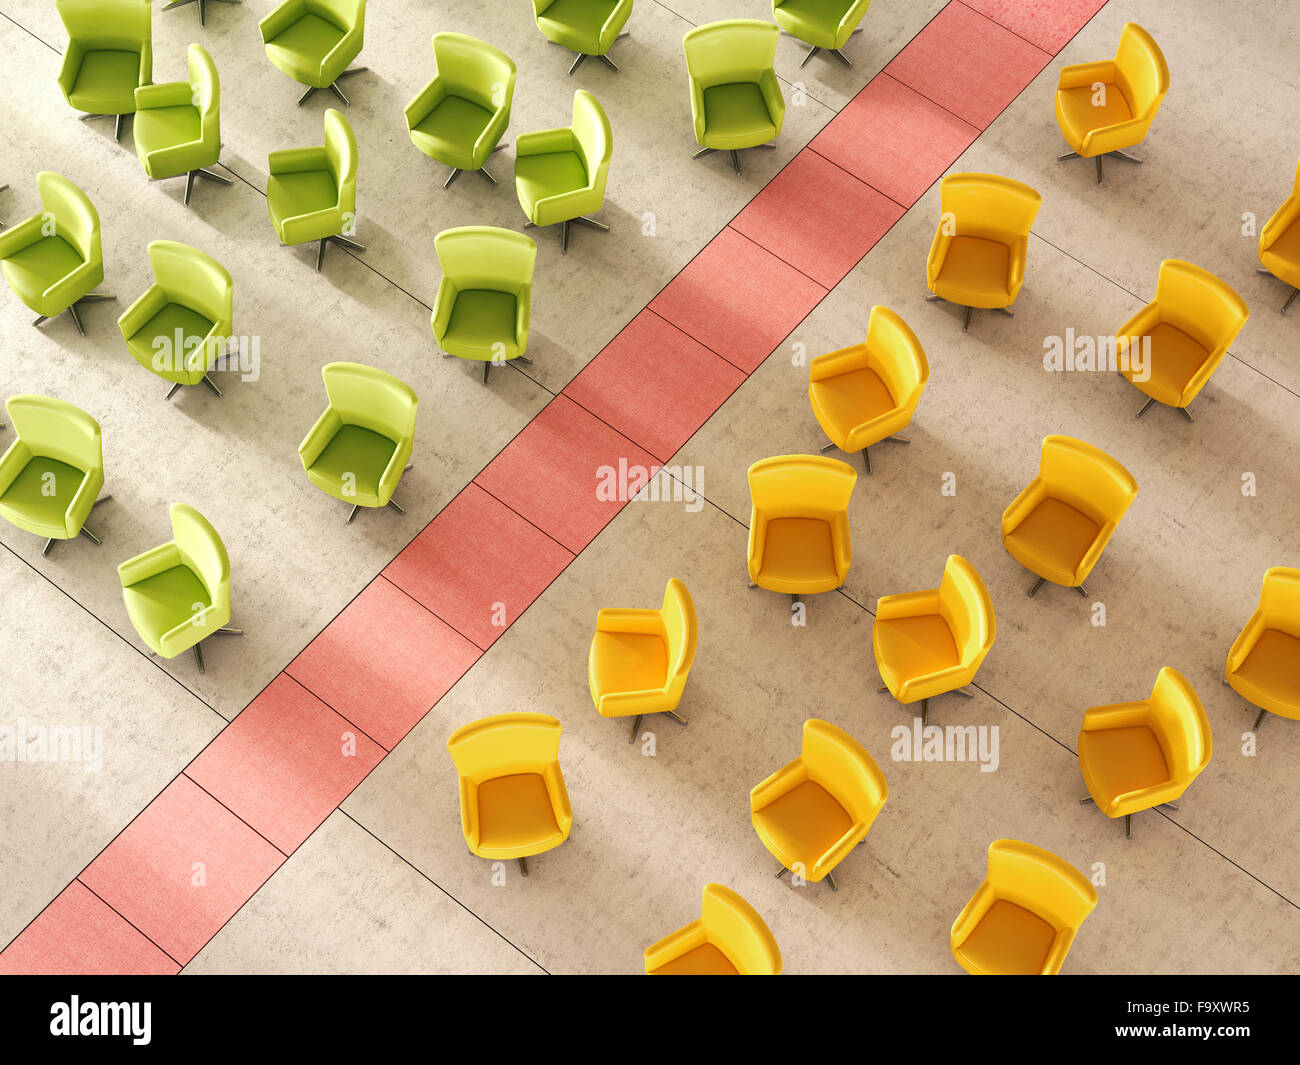 3d Rendering, Green and yellow chair separated by red line - Stock Image